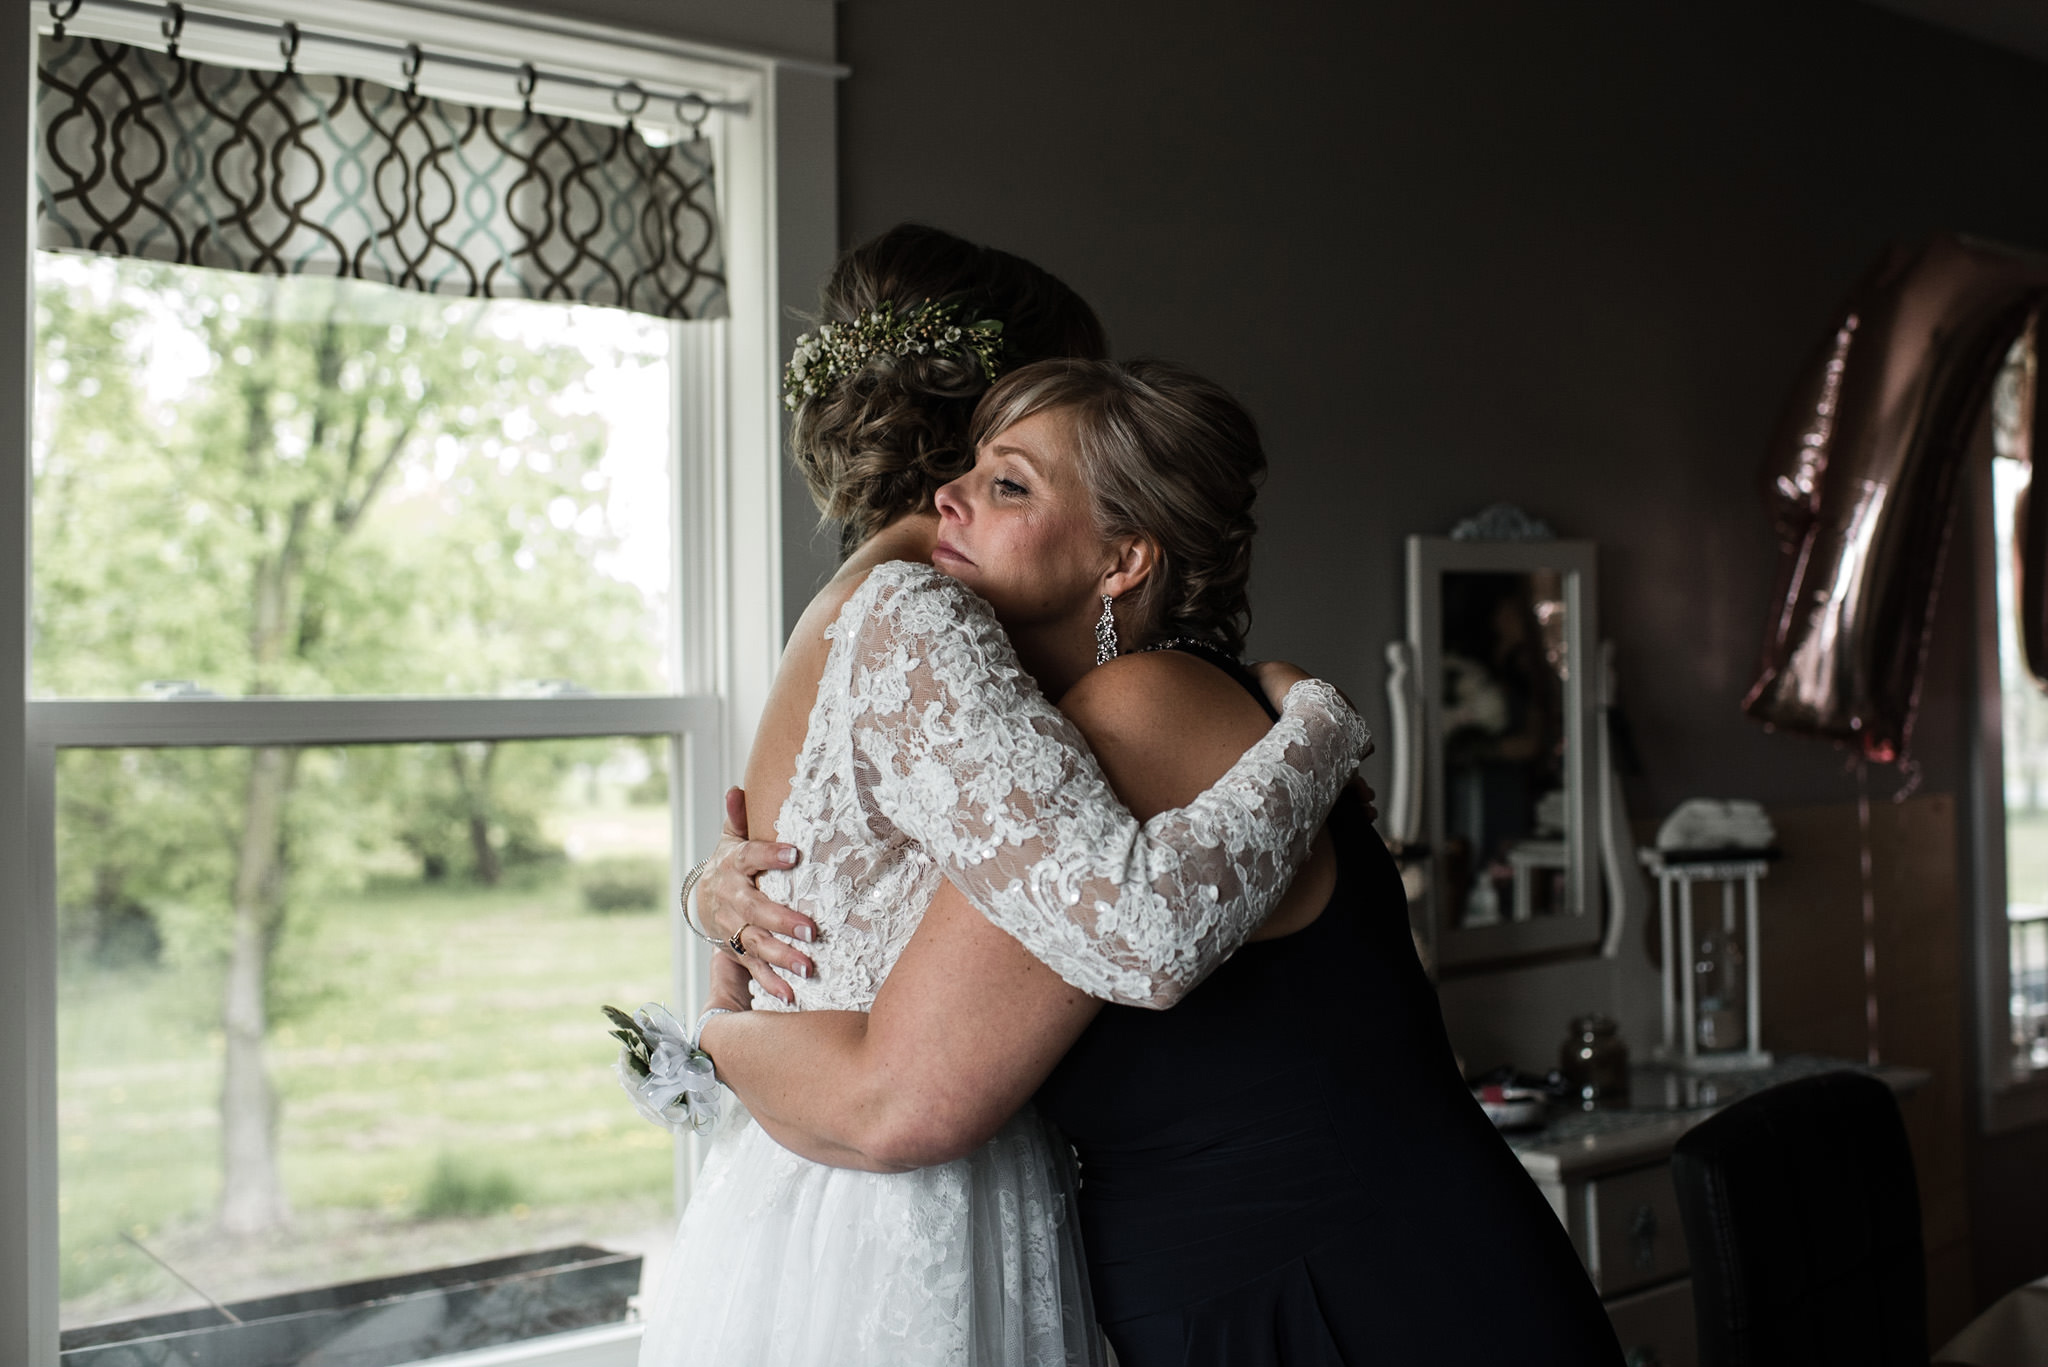 197-mother-daugther-moment-hug-before-wedding-toronto-ottawa.jpg